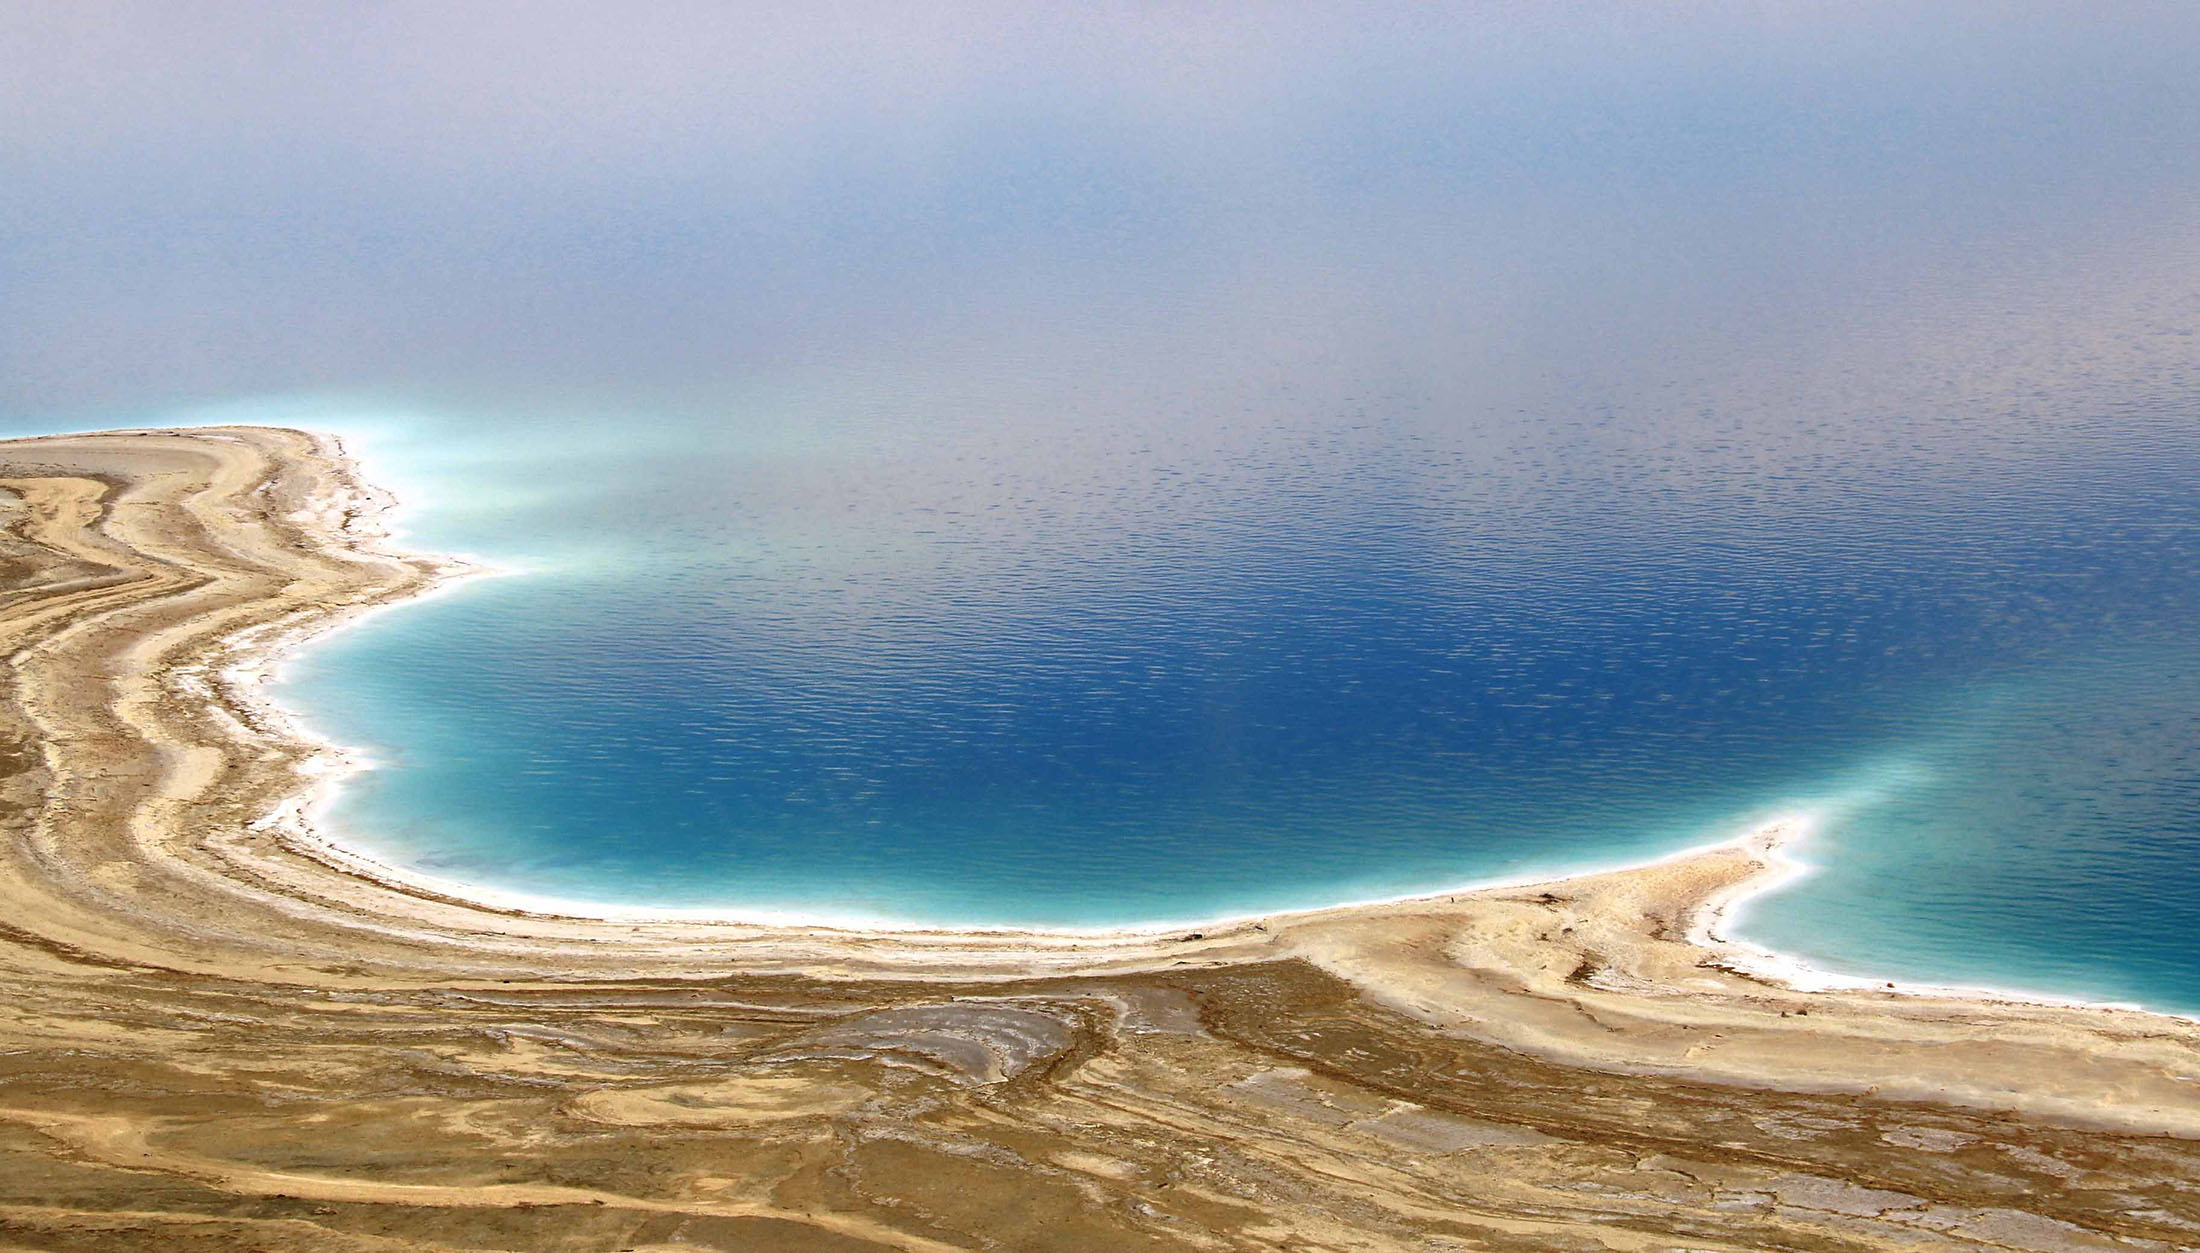 Dead Sea by Dorit Kopel